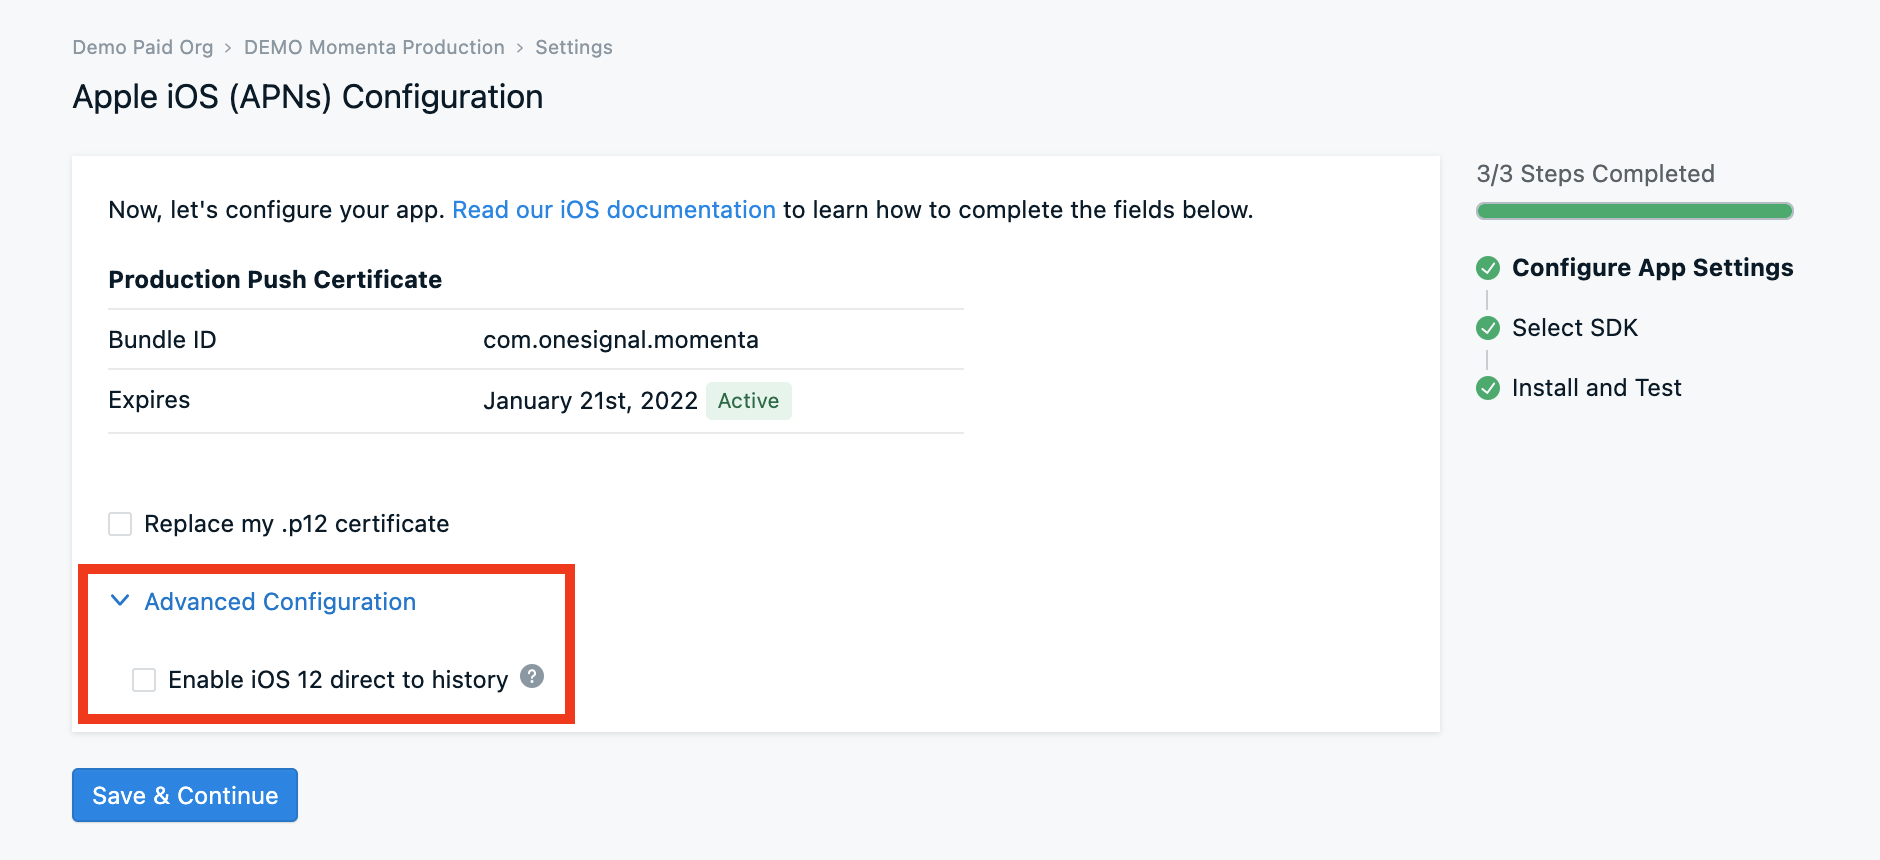 Enabling this checkbox will cause any users running the iOS 12 to automatically be enrolled in provisional notifications.